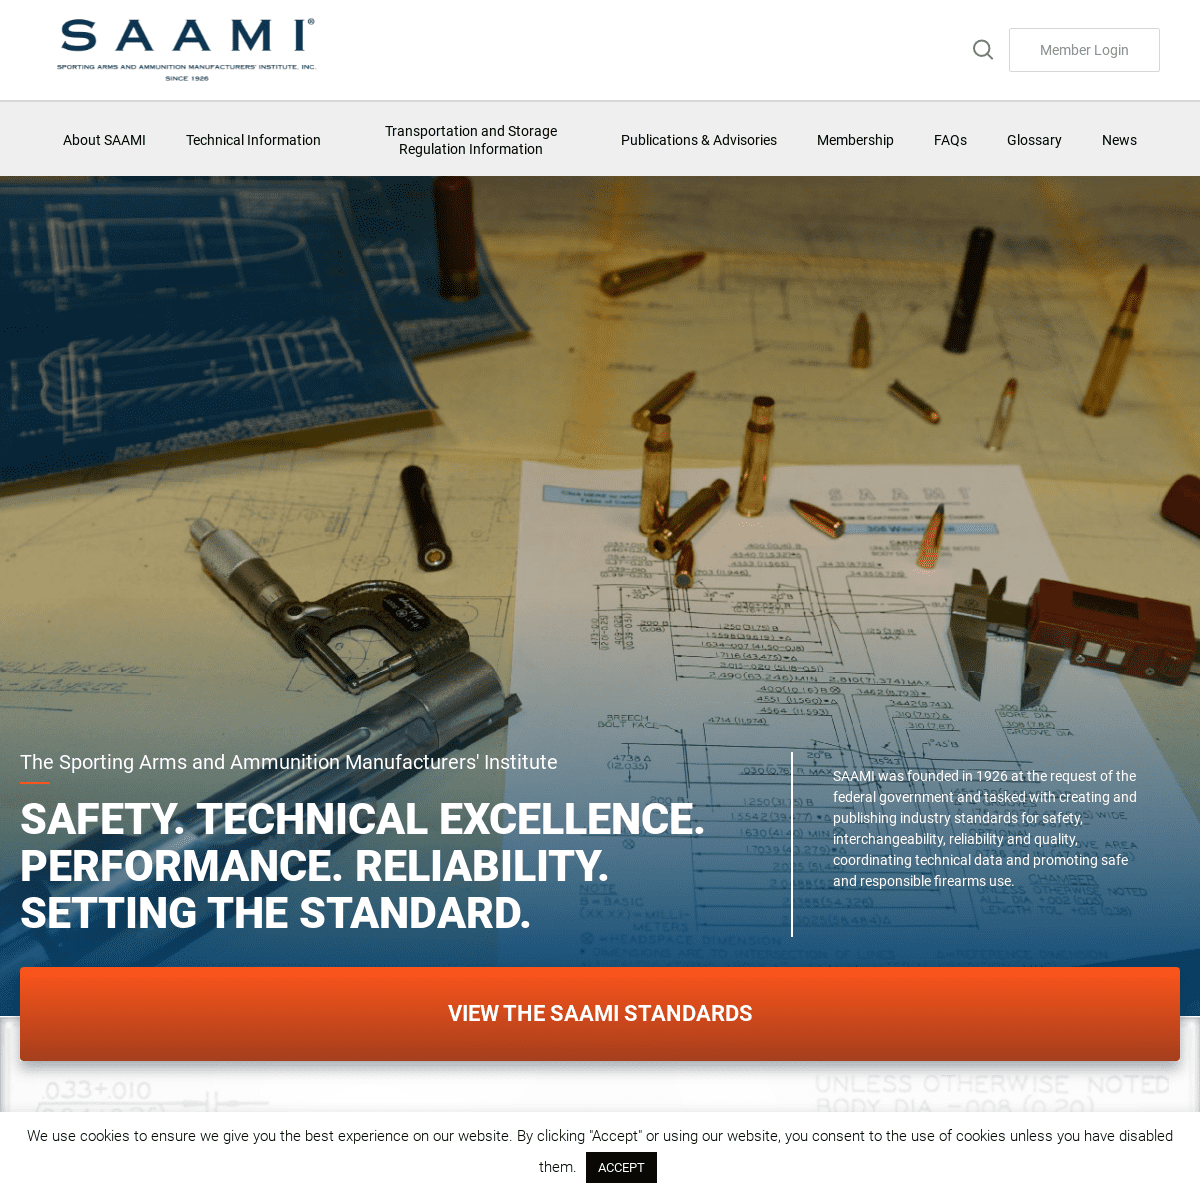 A complete backup of https://saami.org